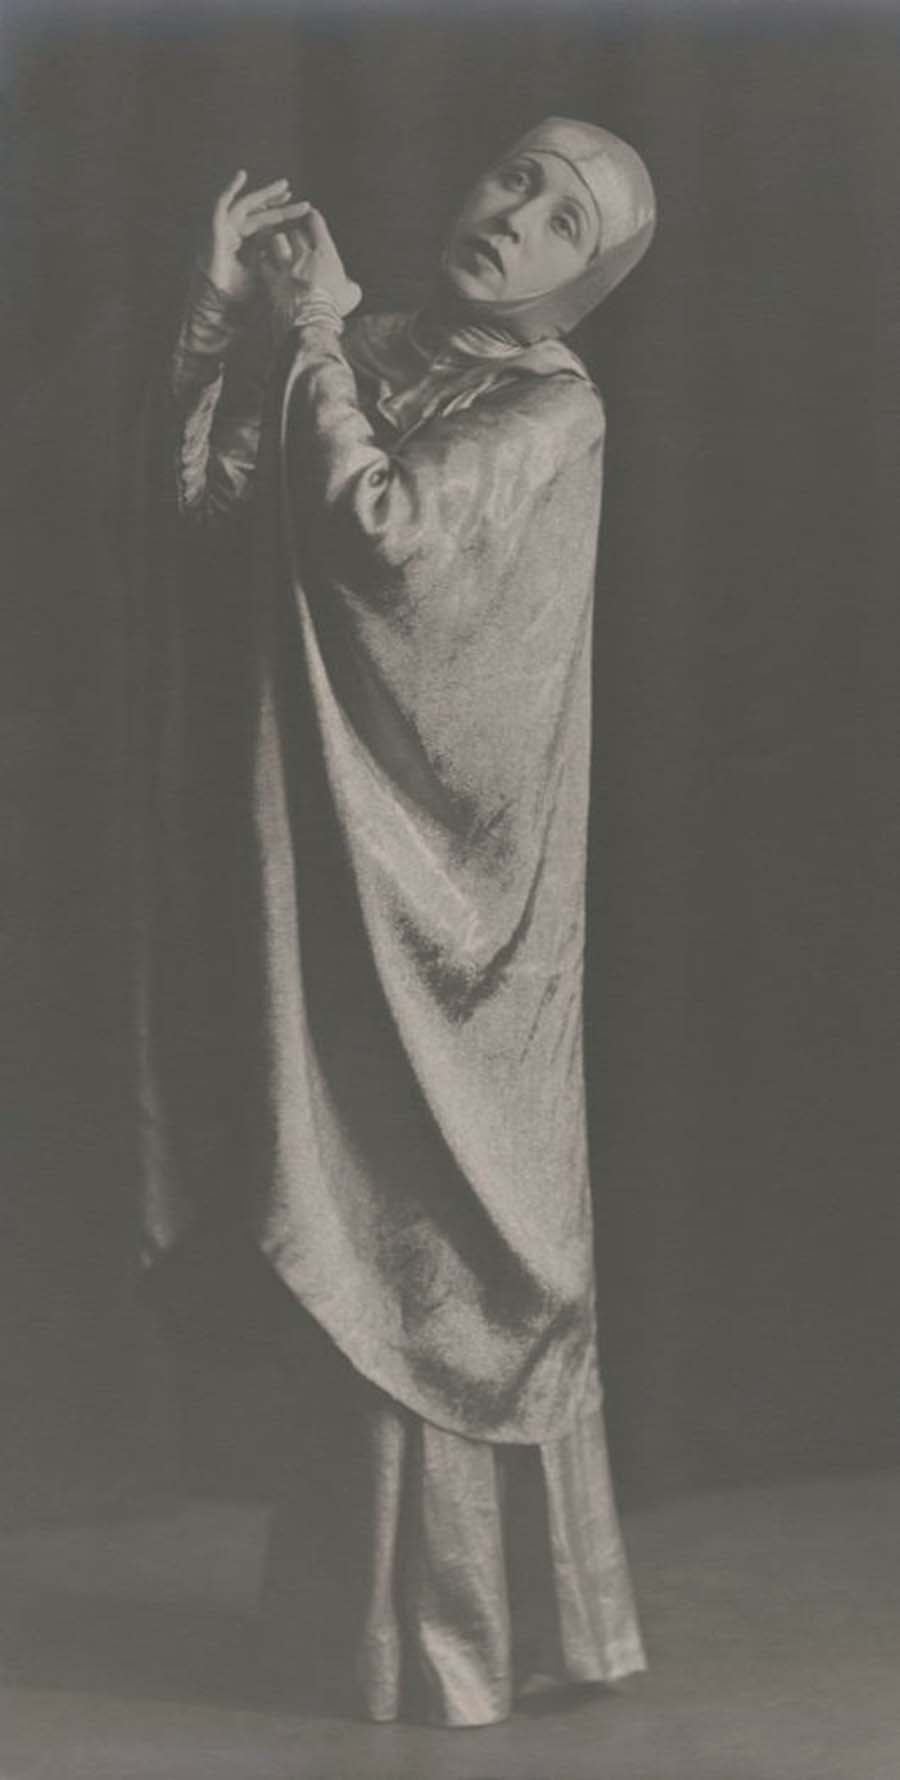 Josef Breitenbach-woman in costume of shiny material with cape and hood, 1930s